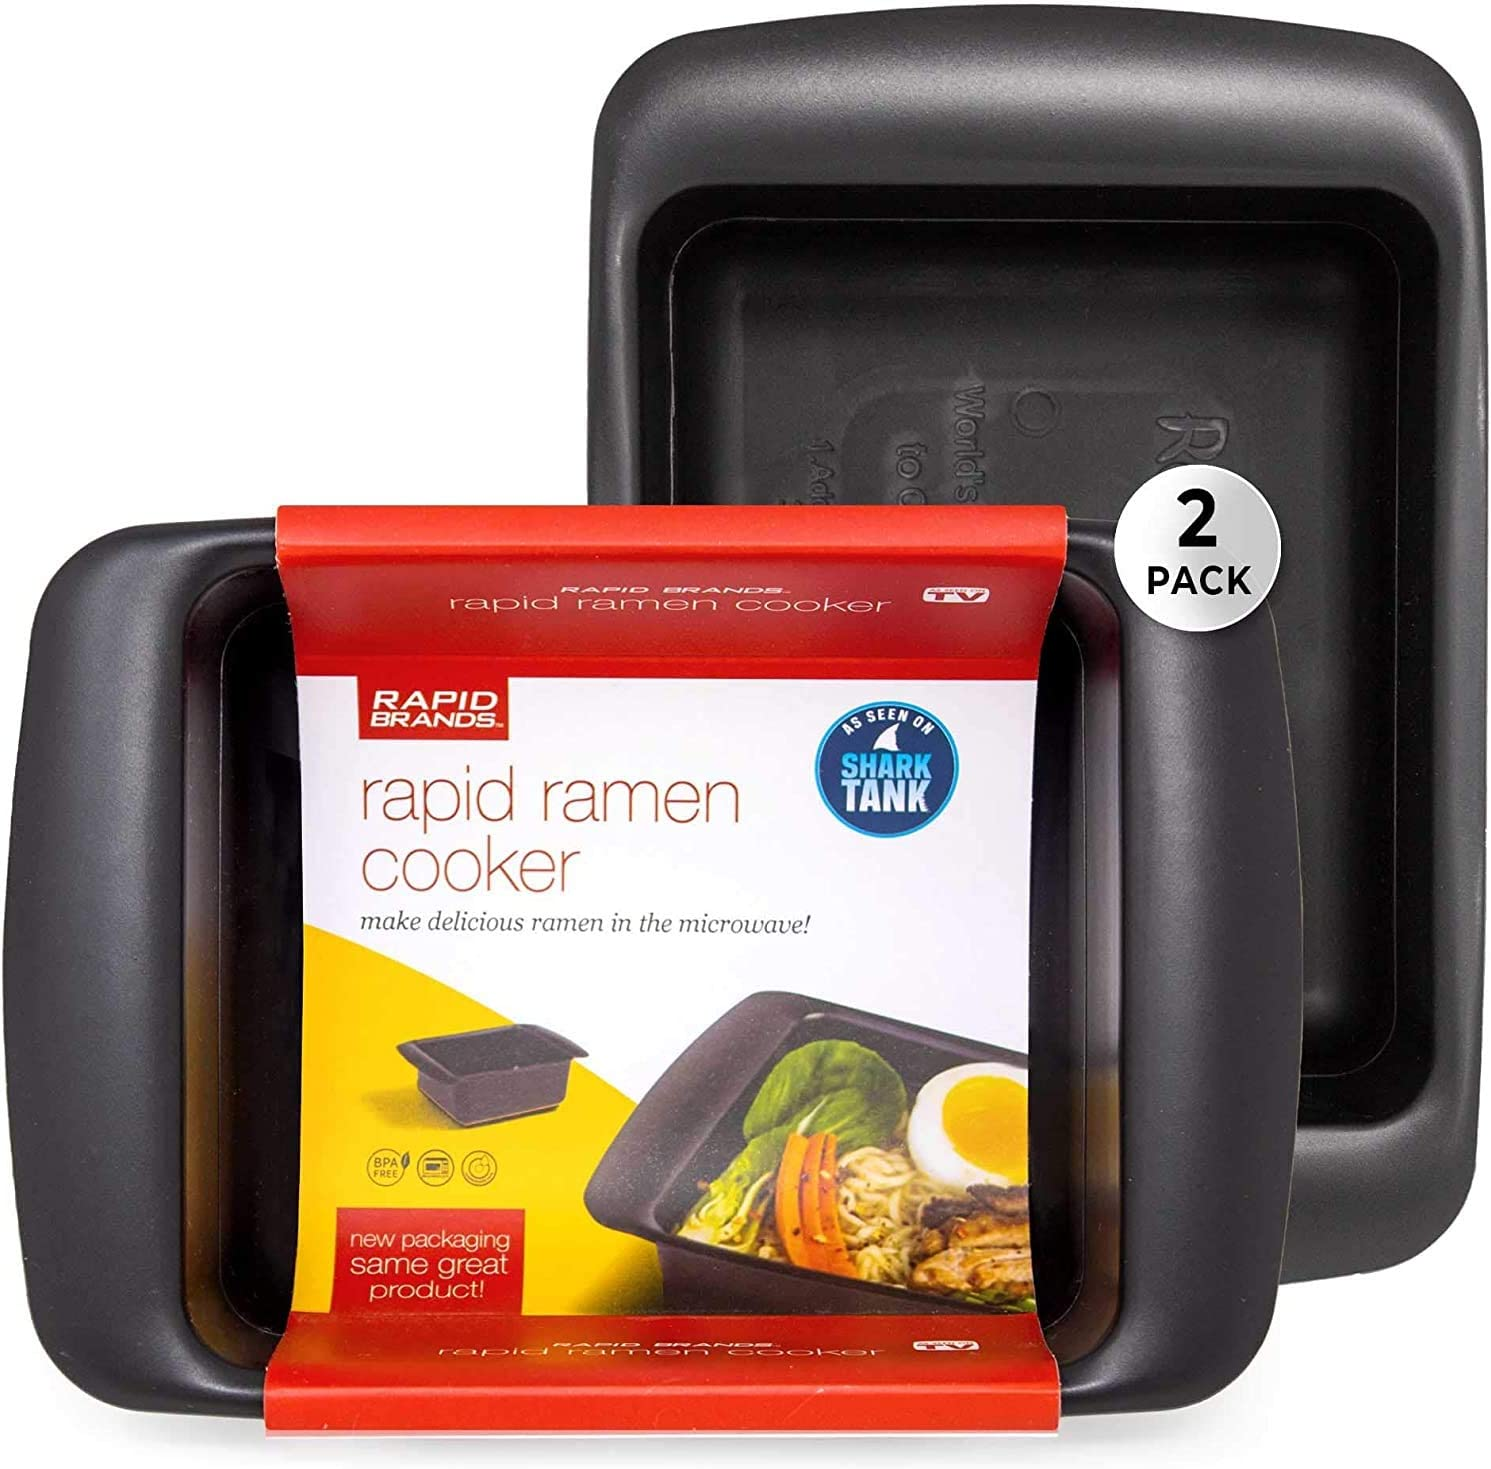 Rapid Ramen Cooker - Microwave Ramen in 3 Minutes - BPA Free and Dishwasher Safe | Perfect for Dorm, Small Kitchen, or Office (2-Pack,Black)